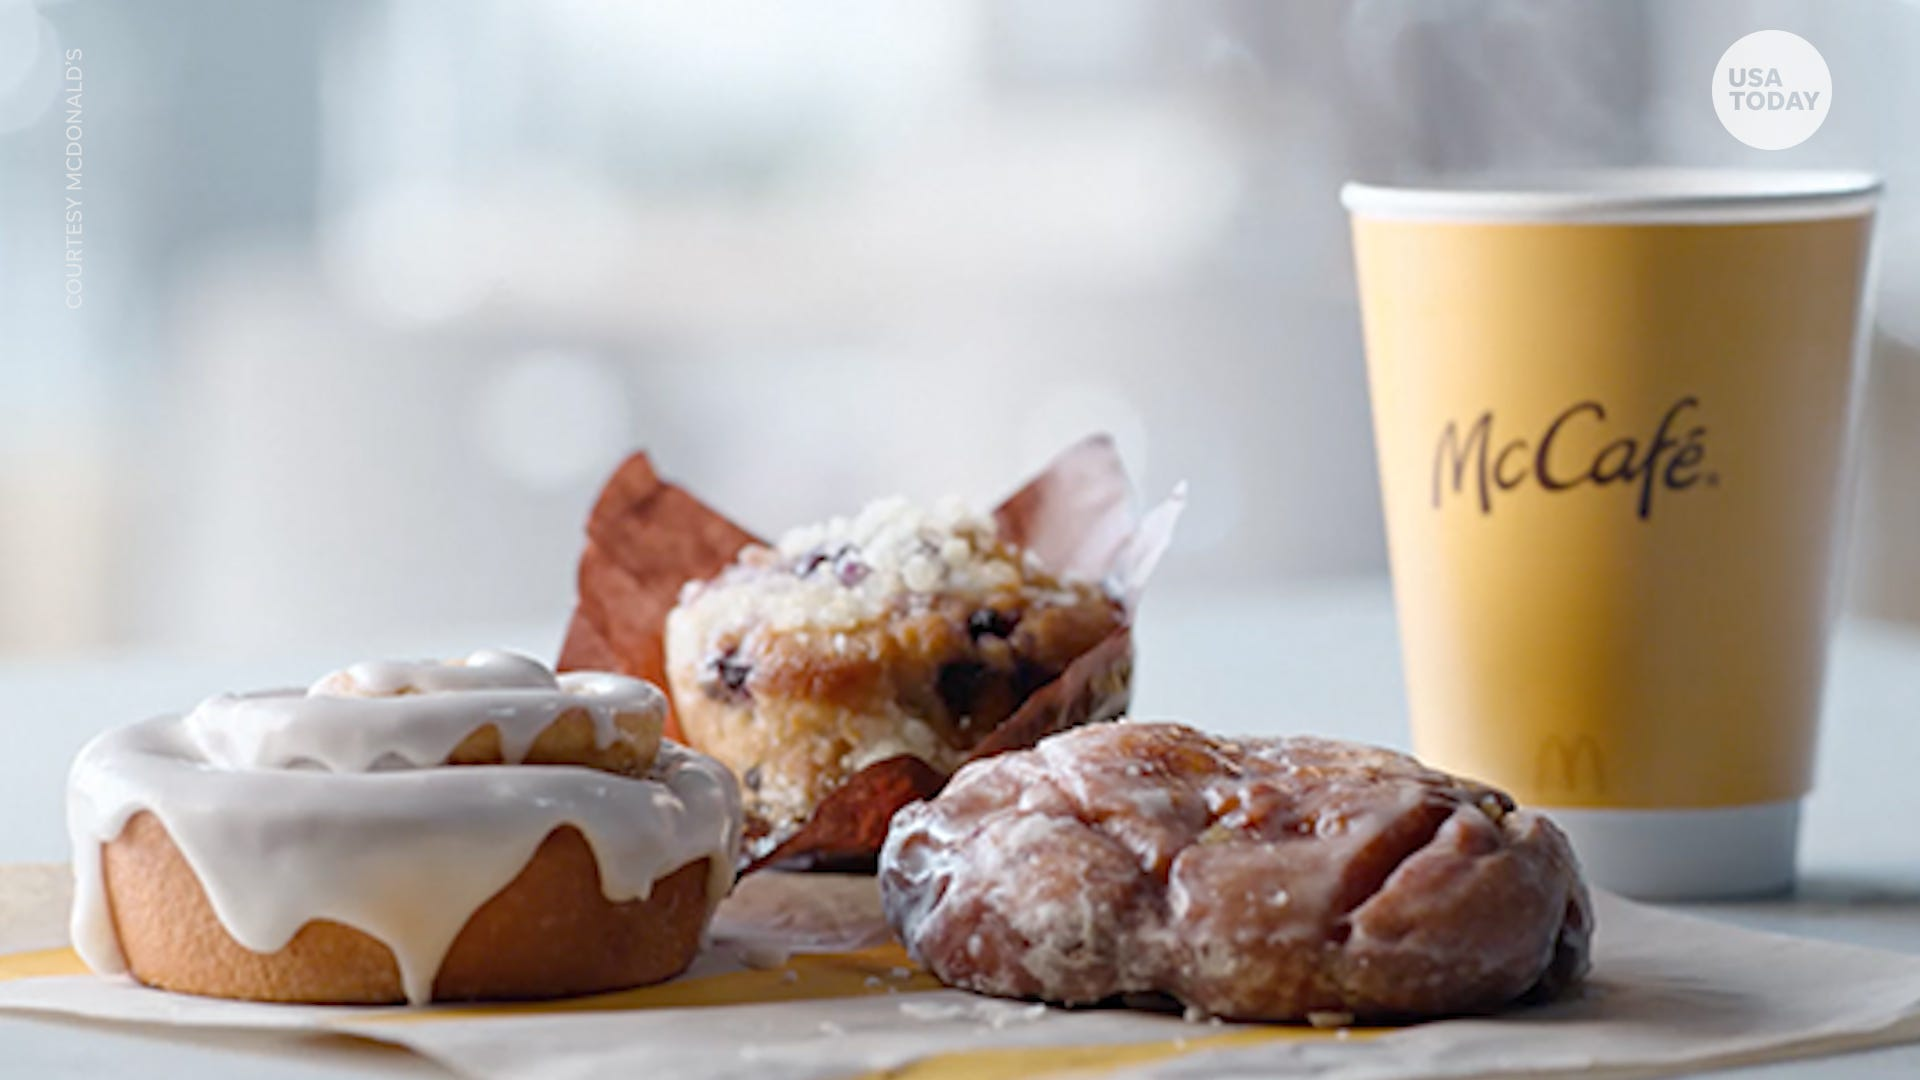 Free McDonald's pastries: McDonald's offers its new pastry with the purchase of a coffee